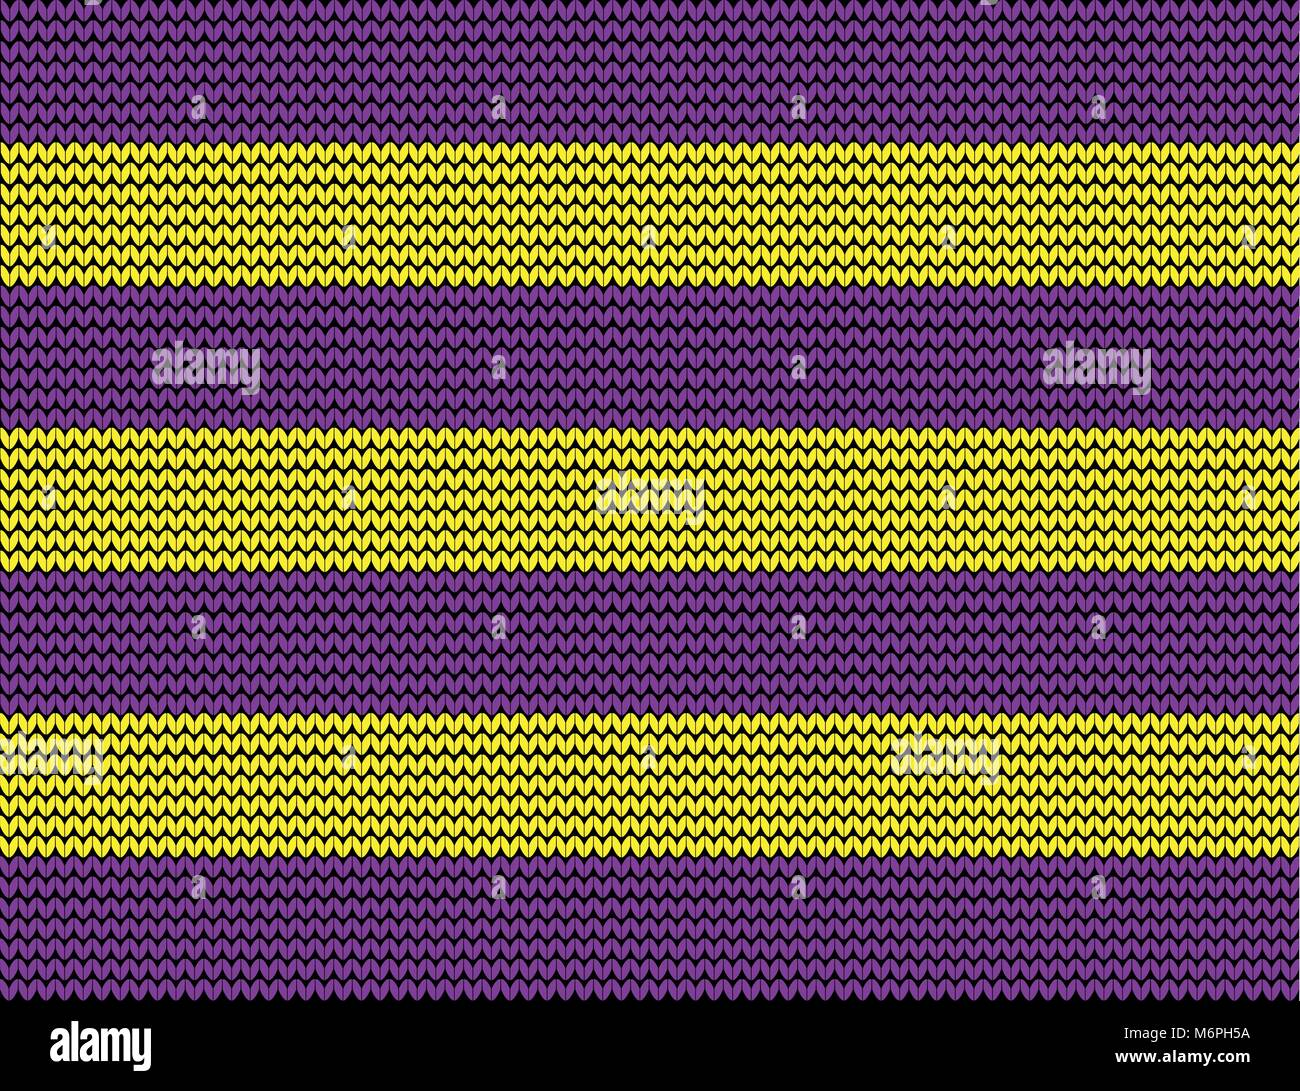 Striped yellow and violet fabric knit background, template. Vector illustration. - Stock Vector